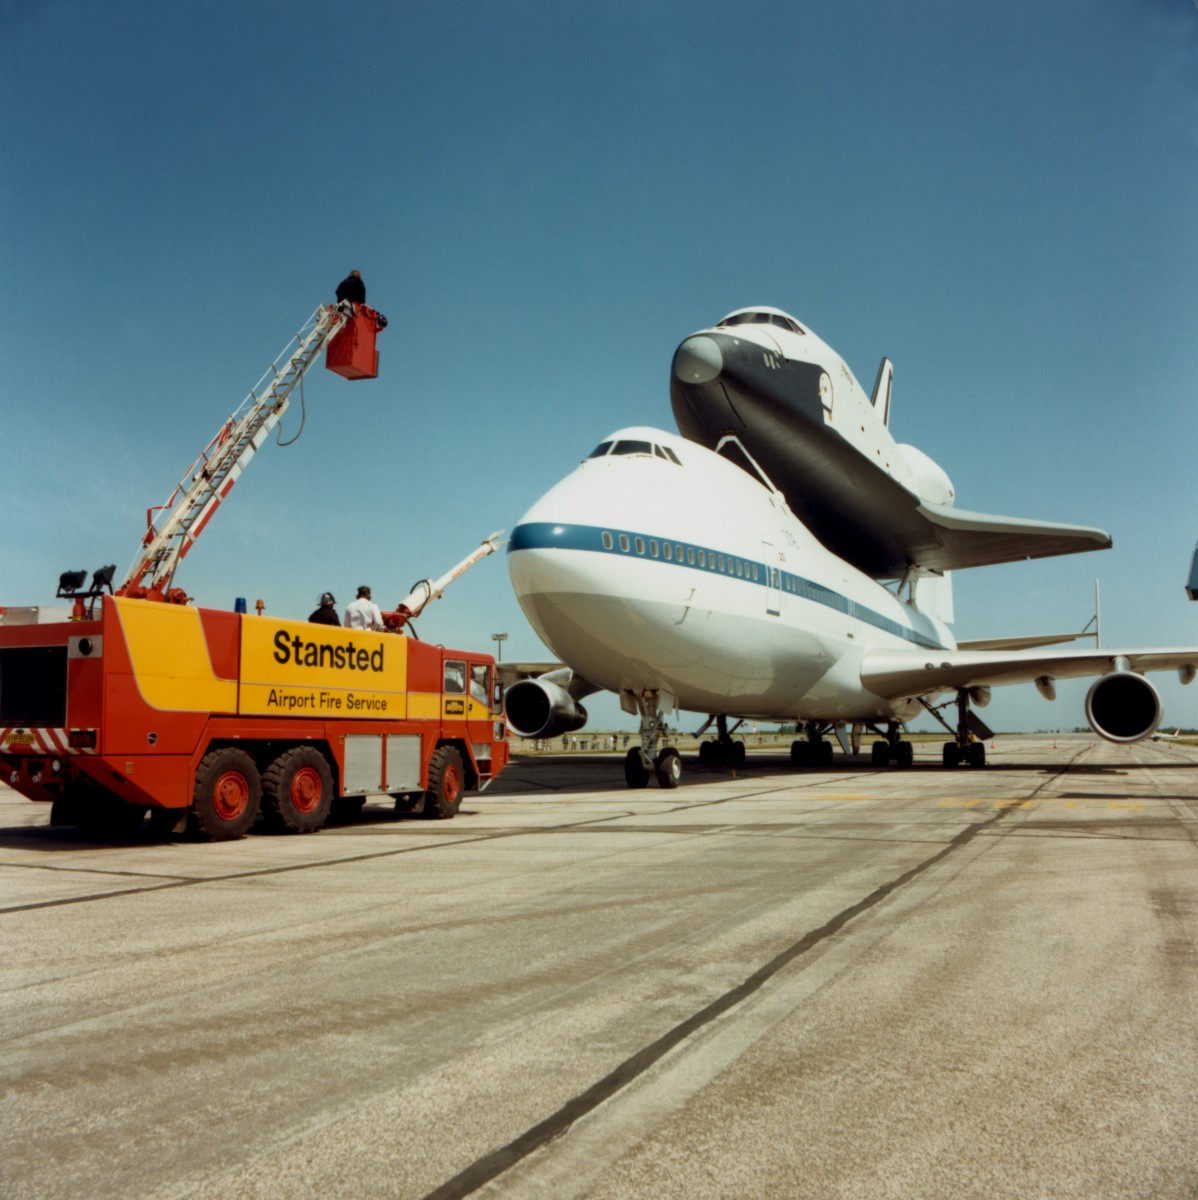 On 5 June 1983, the shuttle touched down at the airport as part of a European tour. Crowds of 200,000  people turned out to watch.